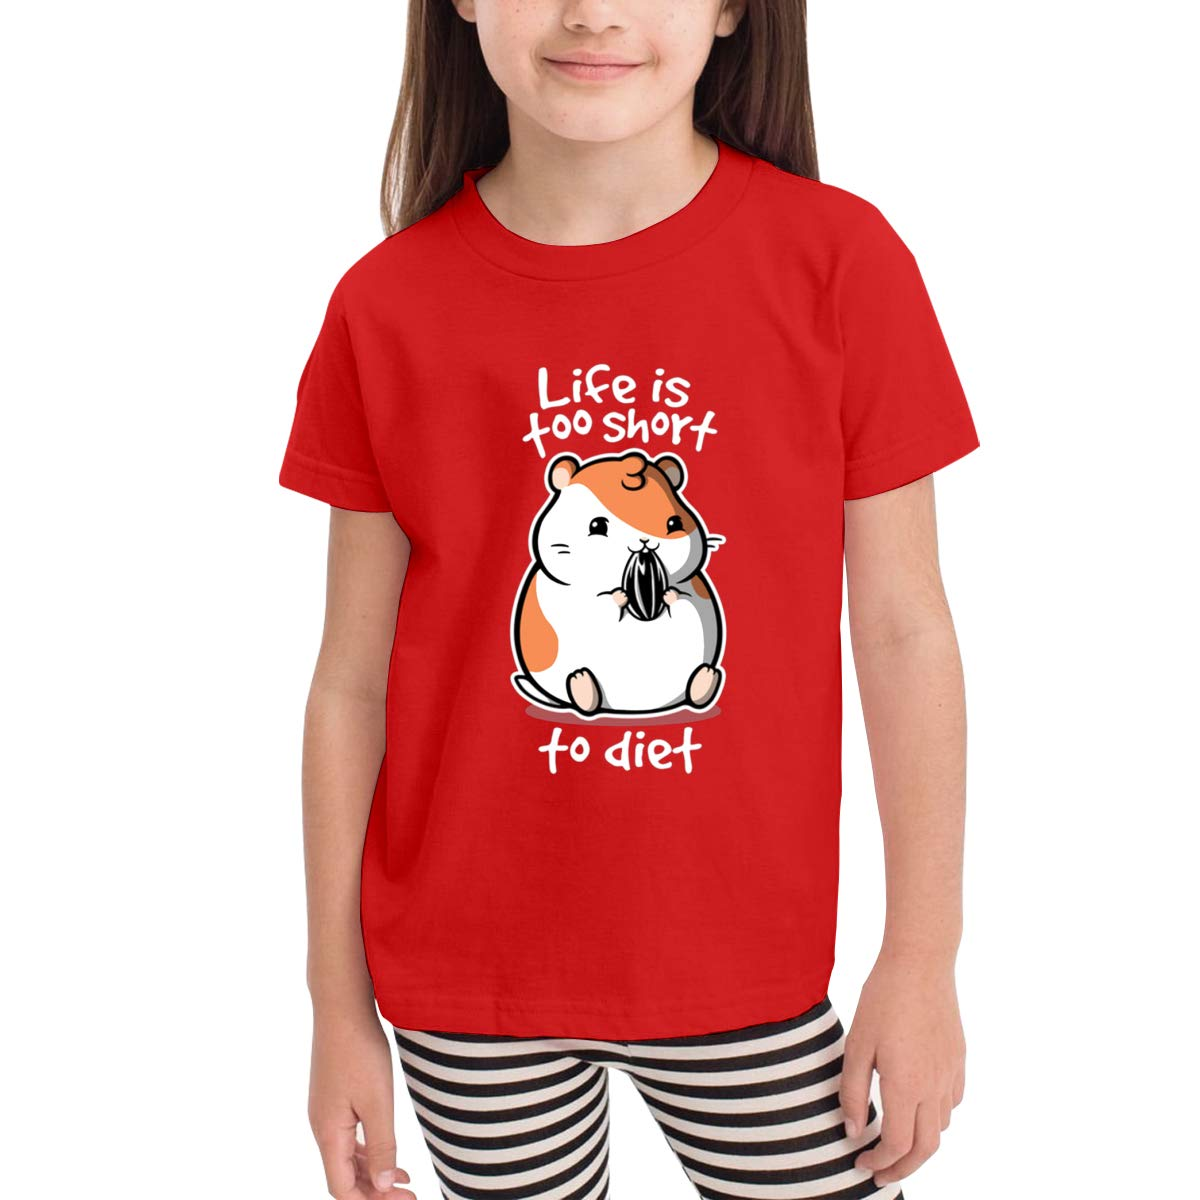 Onlybabycare Fat Life 100/% Cotton Toddler Baby Boys Girls Kids Short Sleeve T Shirt Top Tee Clothes 2-6 T